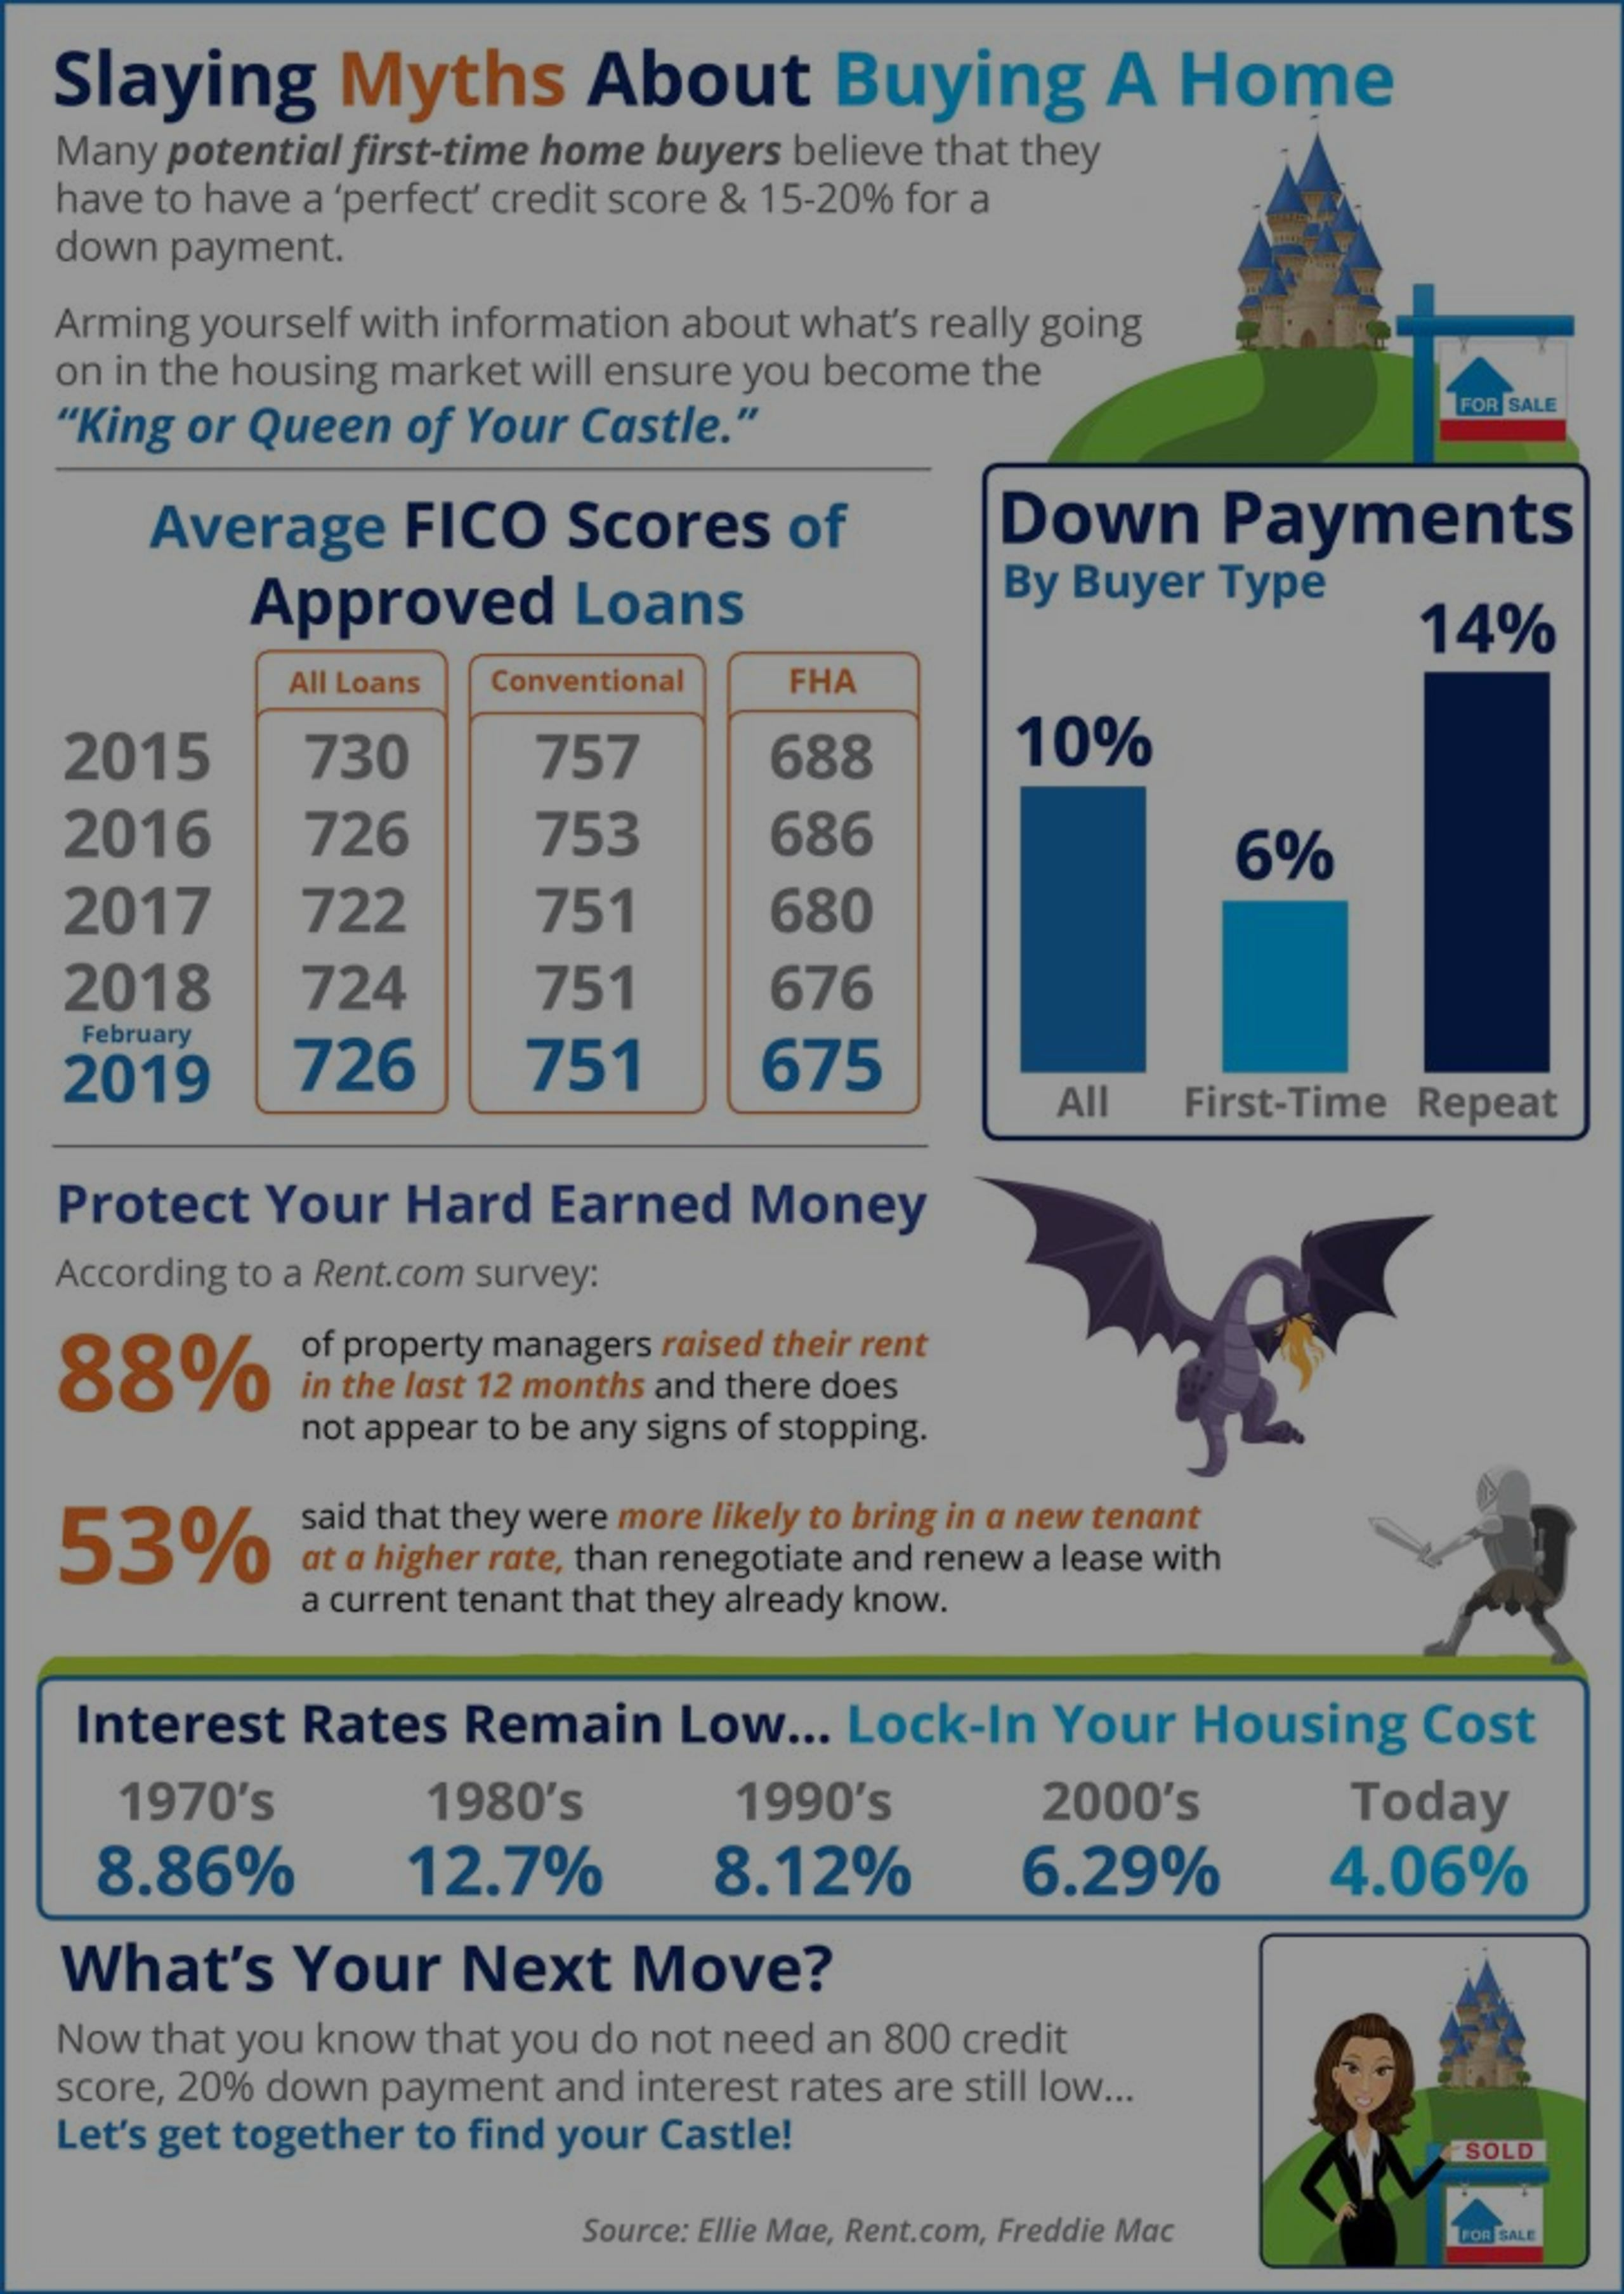 Slaying Myths About Buying A Home